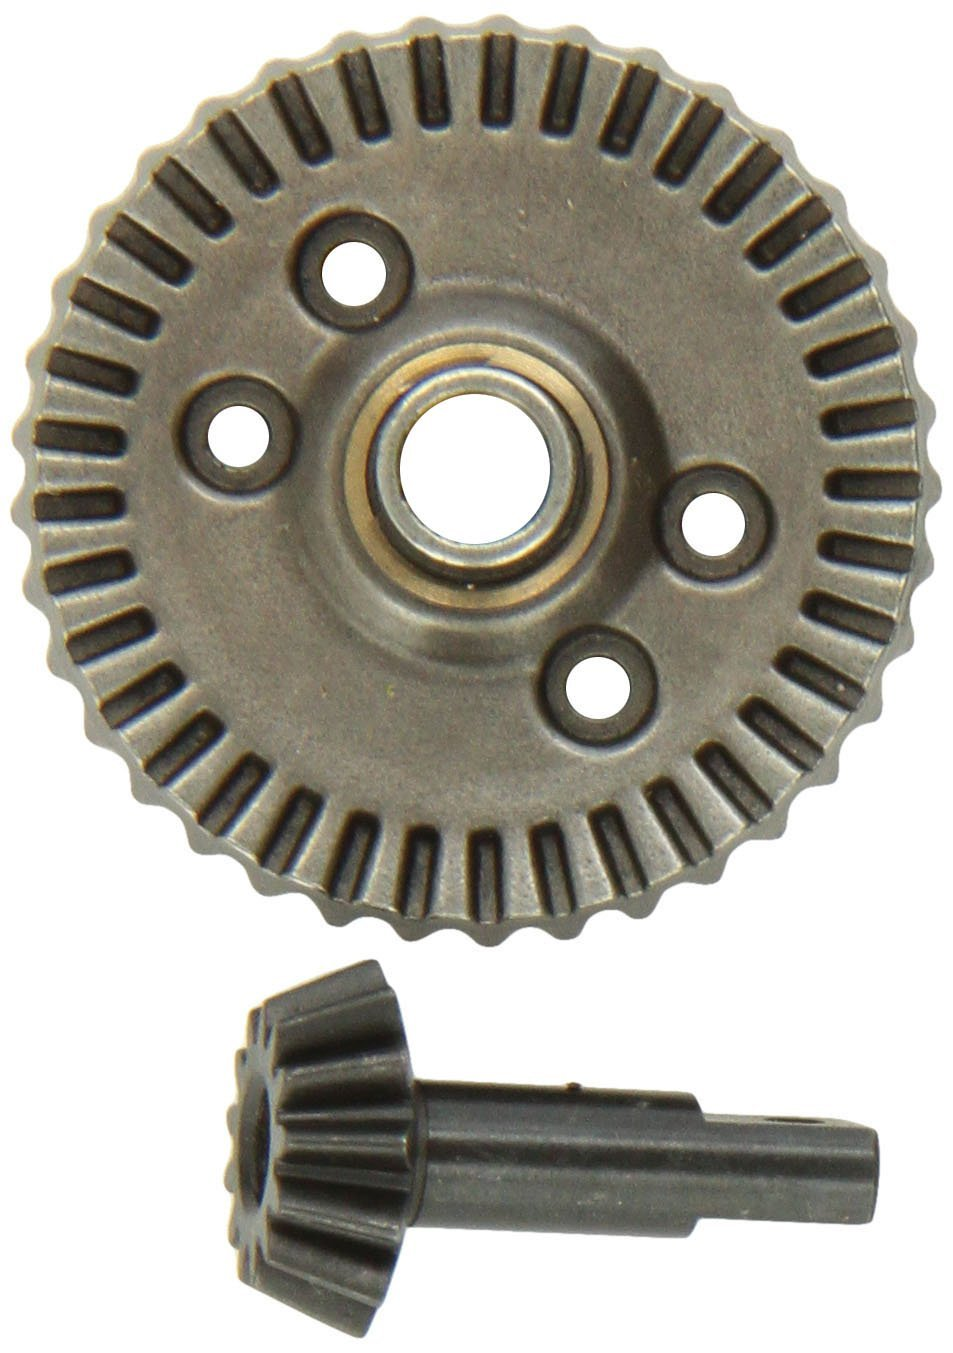 Traxxas 5379X Differential Ring Gear and Pinion, Revo 3.3 by